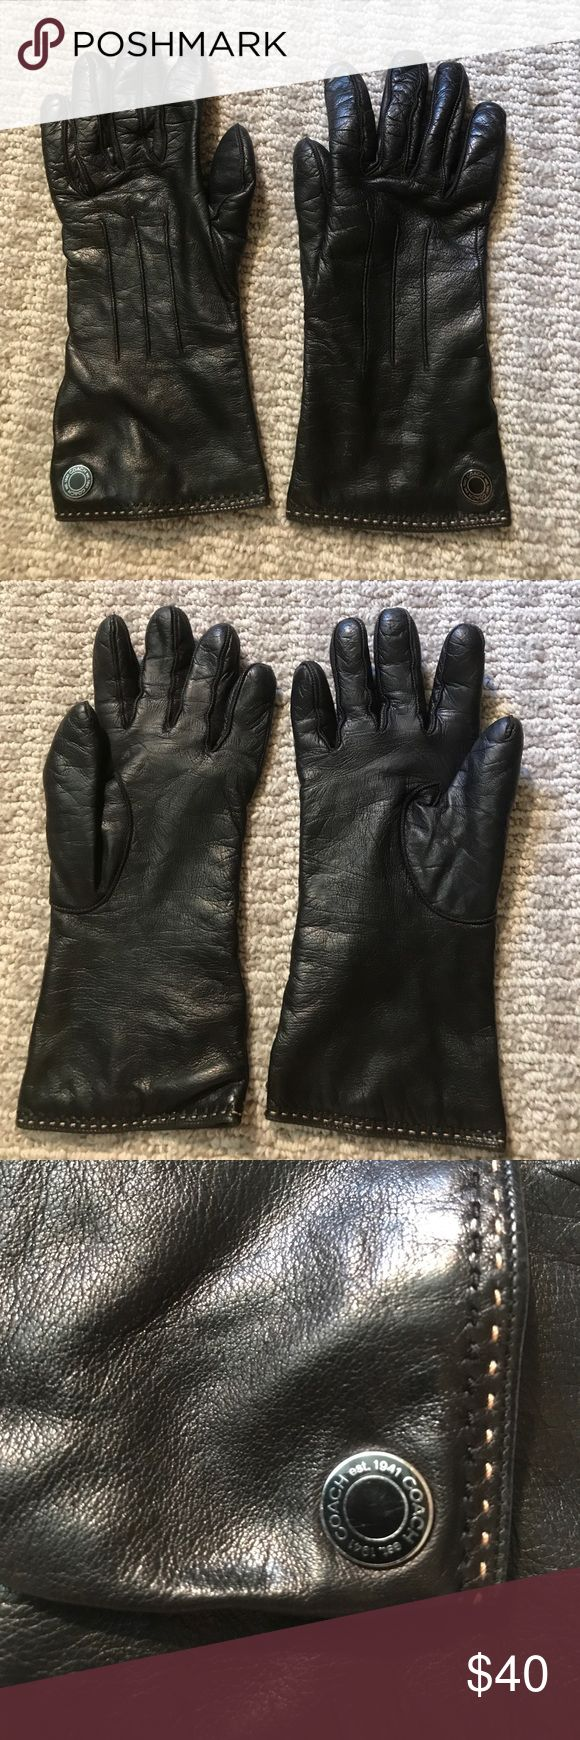 Ladies leather gloves designer - Coach Leather Gloves Coach Black Leather Gloves Coach Accessories Gloves Mittens